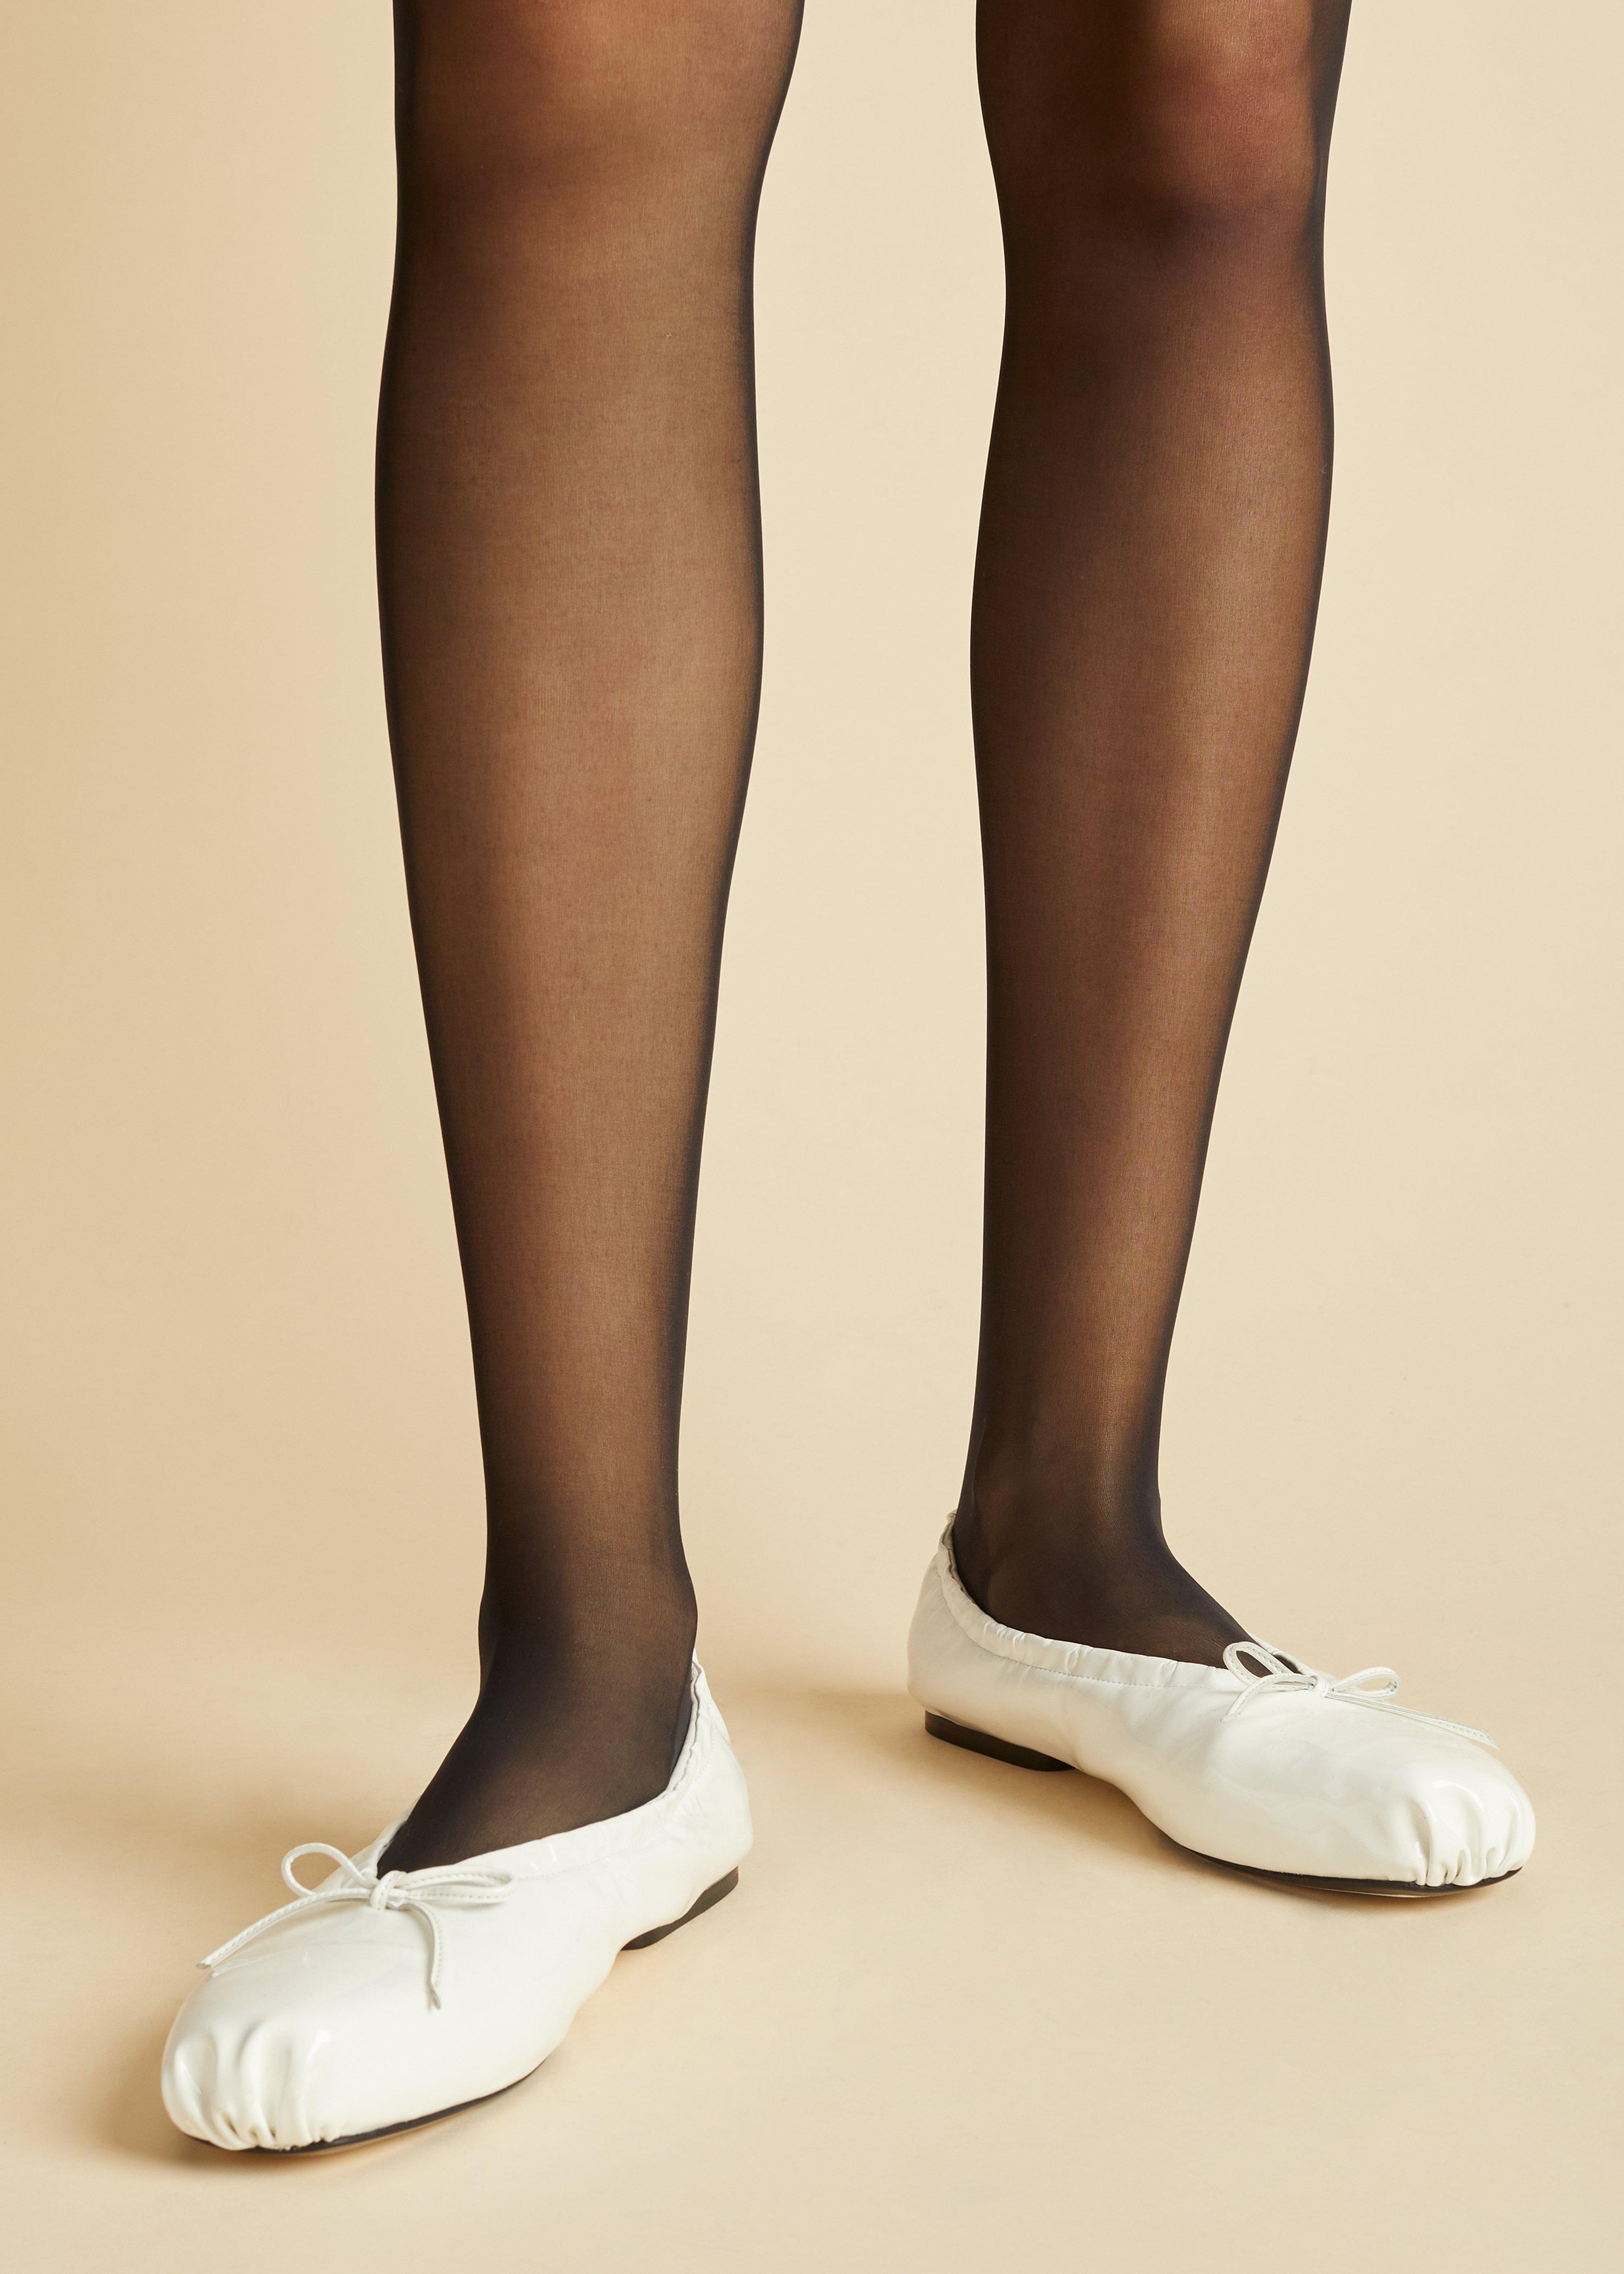 The Ashland Ballet Flat in White Patent Leather 4